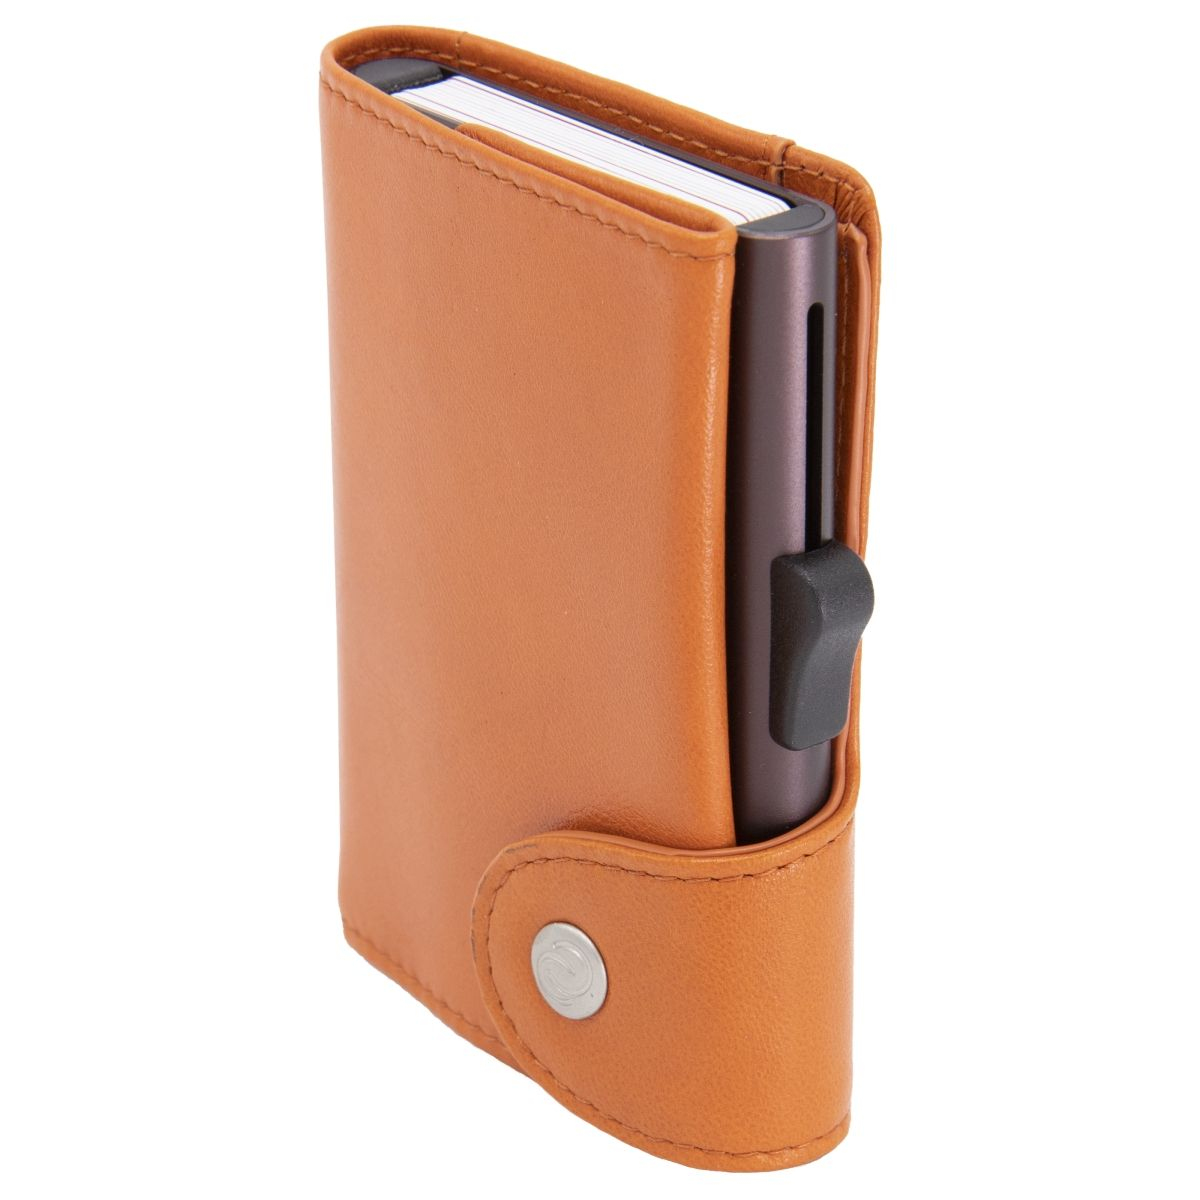 C-Secure XL Aluminum Wallet with Genuine Leather - Arancio Orange